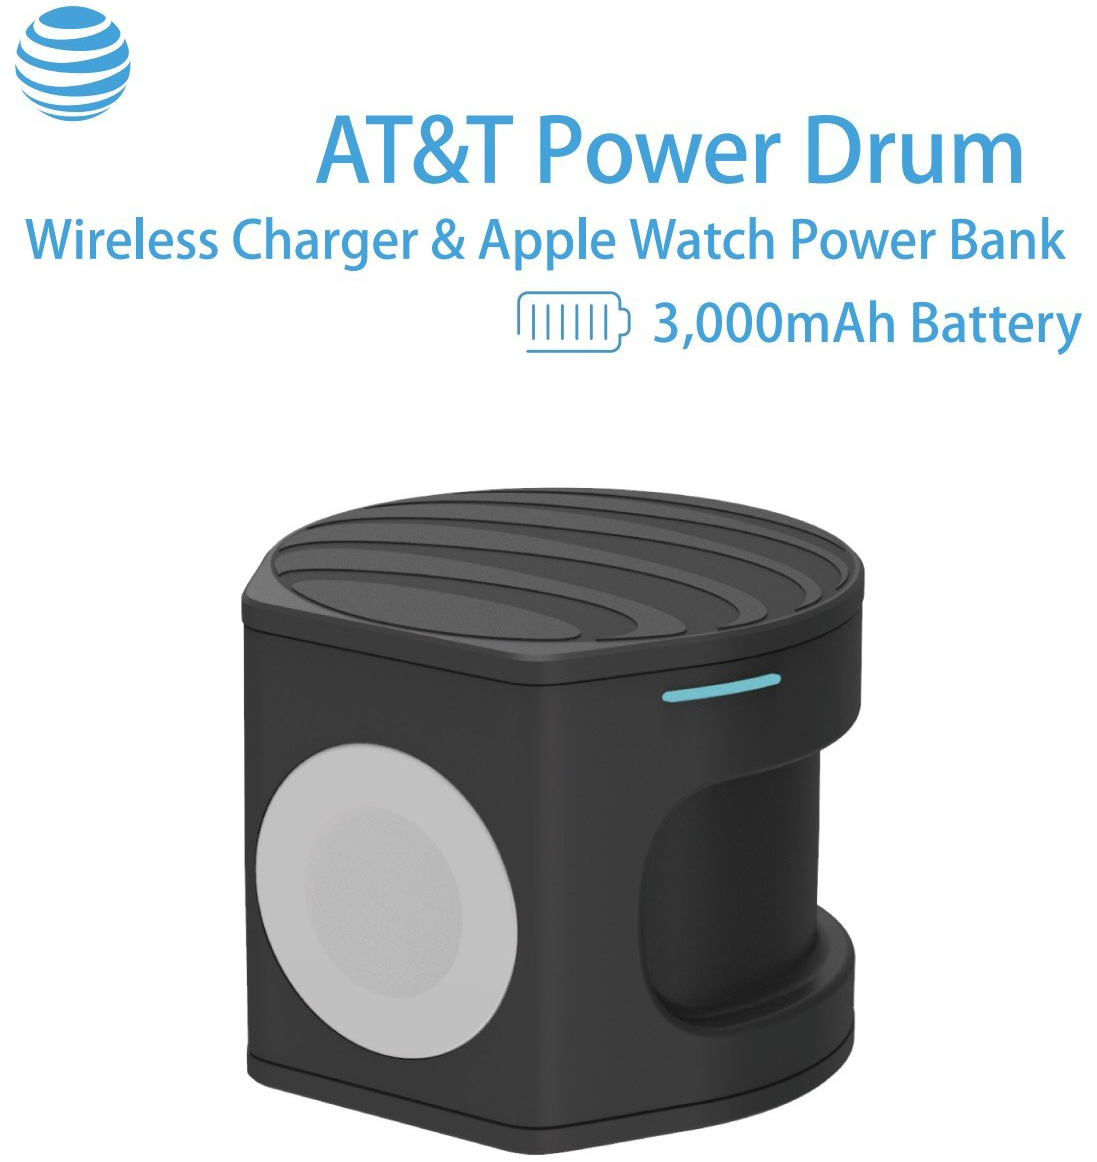 AT&T Reportedly Developing Wireless Charger That Powers iPhone and Apple Watch Simultaneously